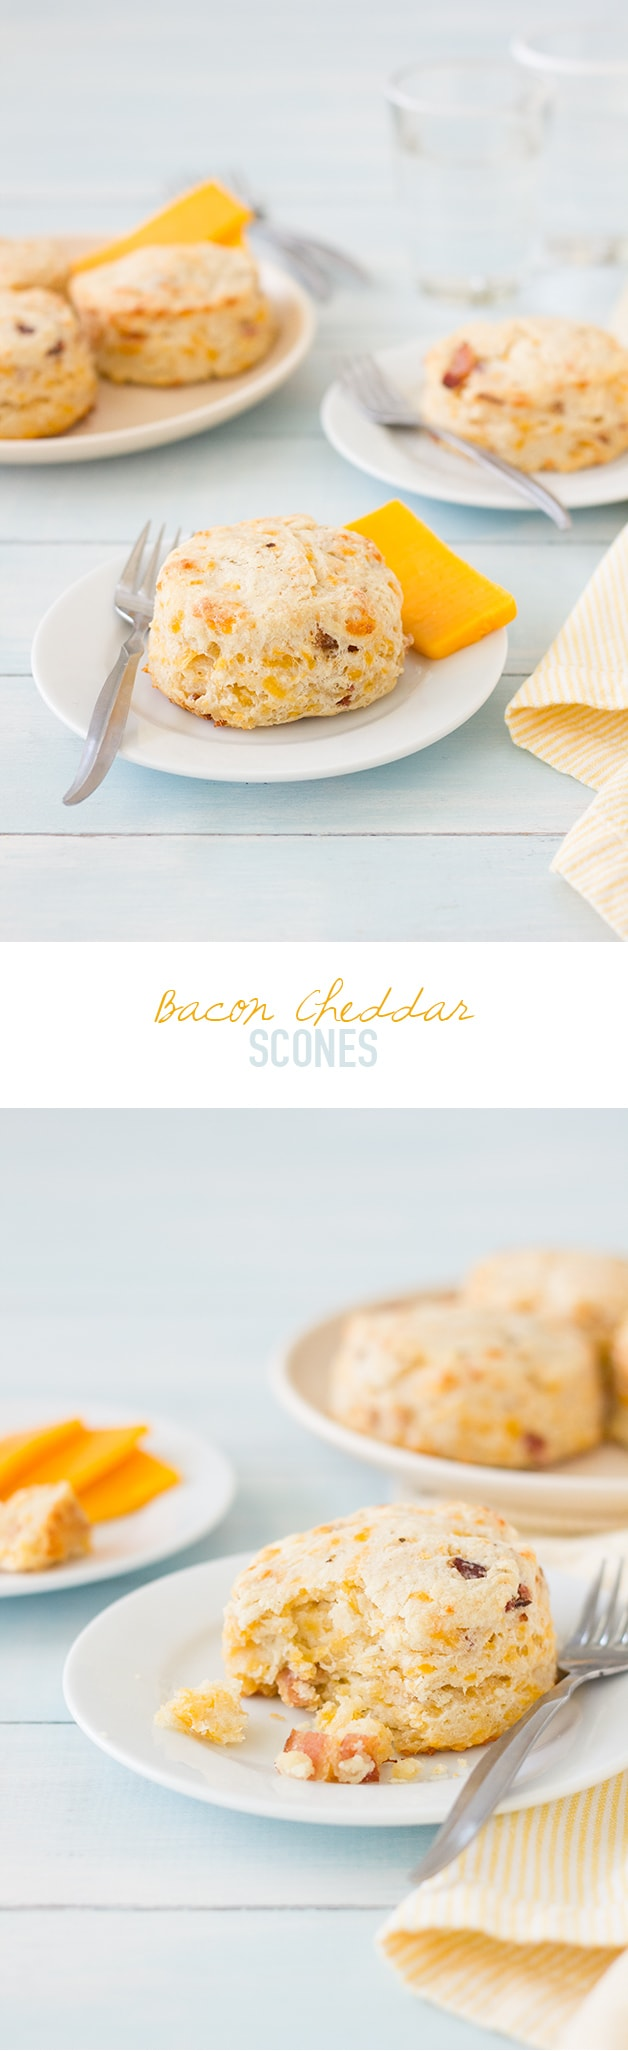 Bacon Cheddar Scones -Flaky, buttery scones flecked with bits of tangy cheddar and crisp bacon. | www.brighteyedbaker.com